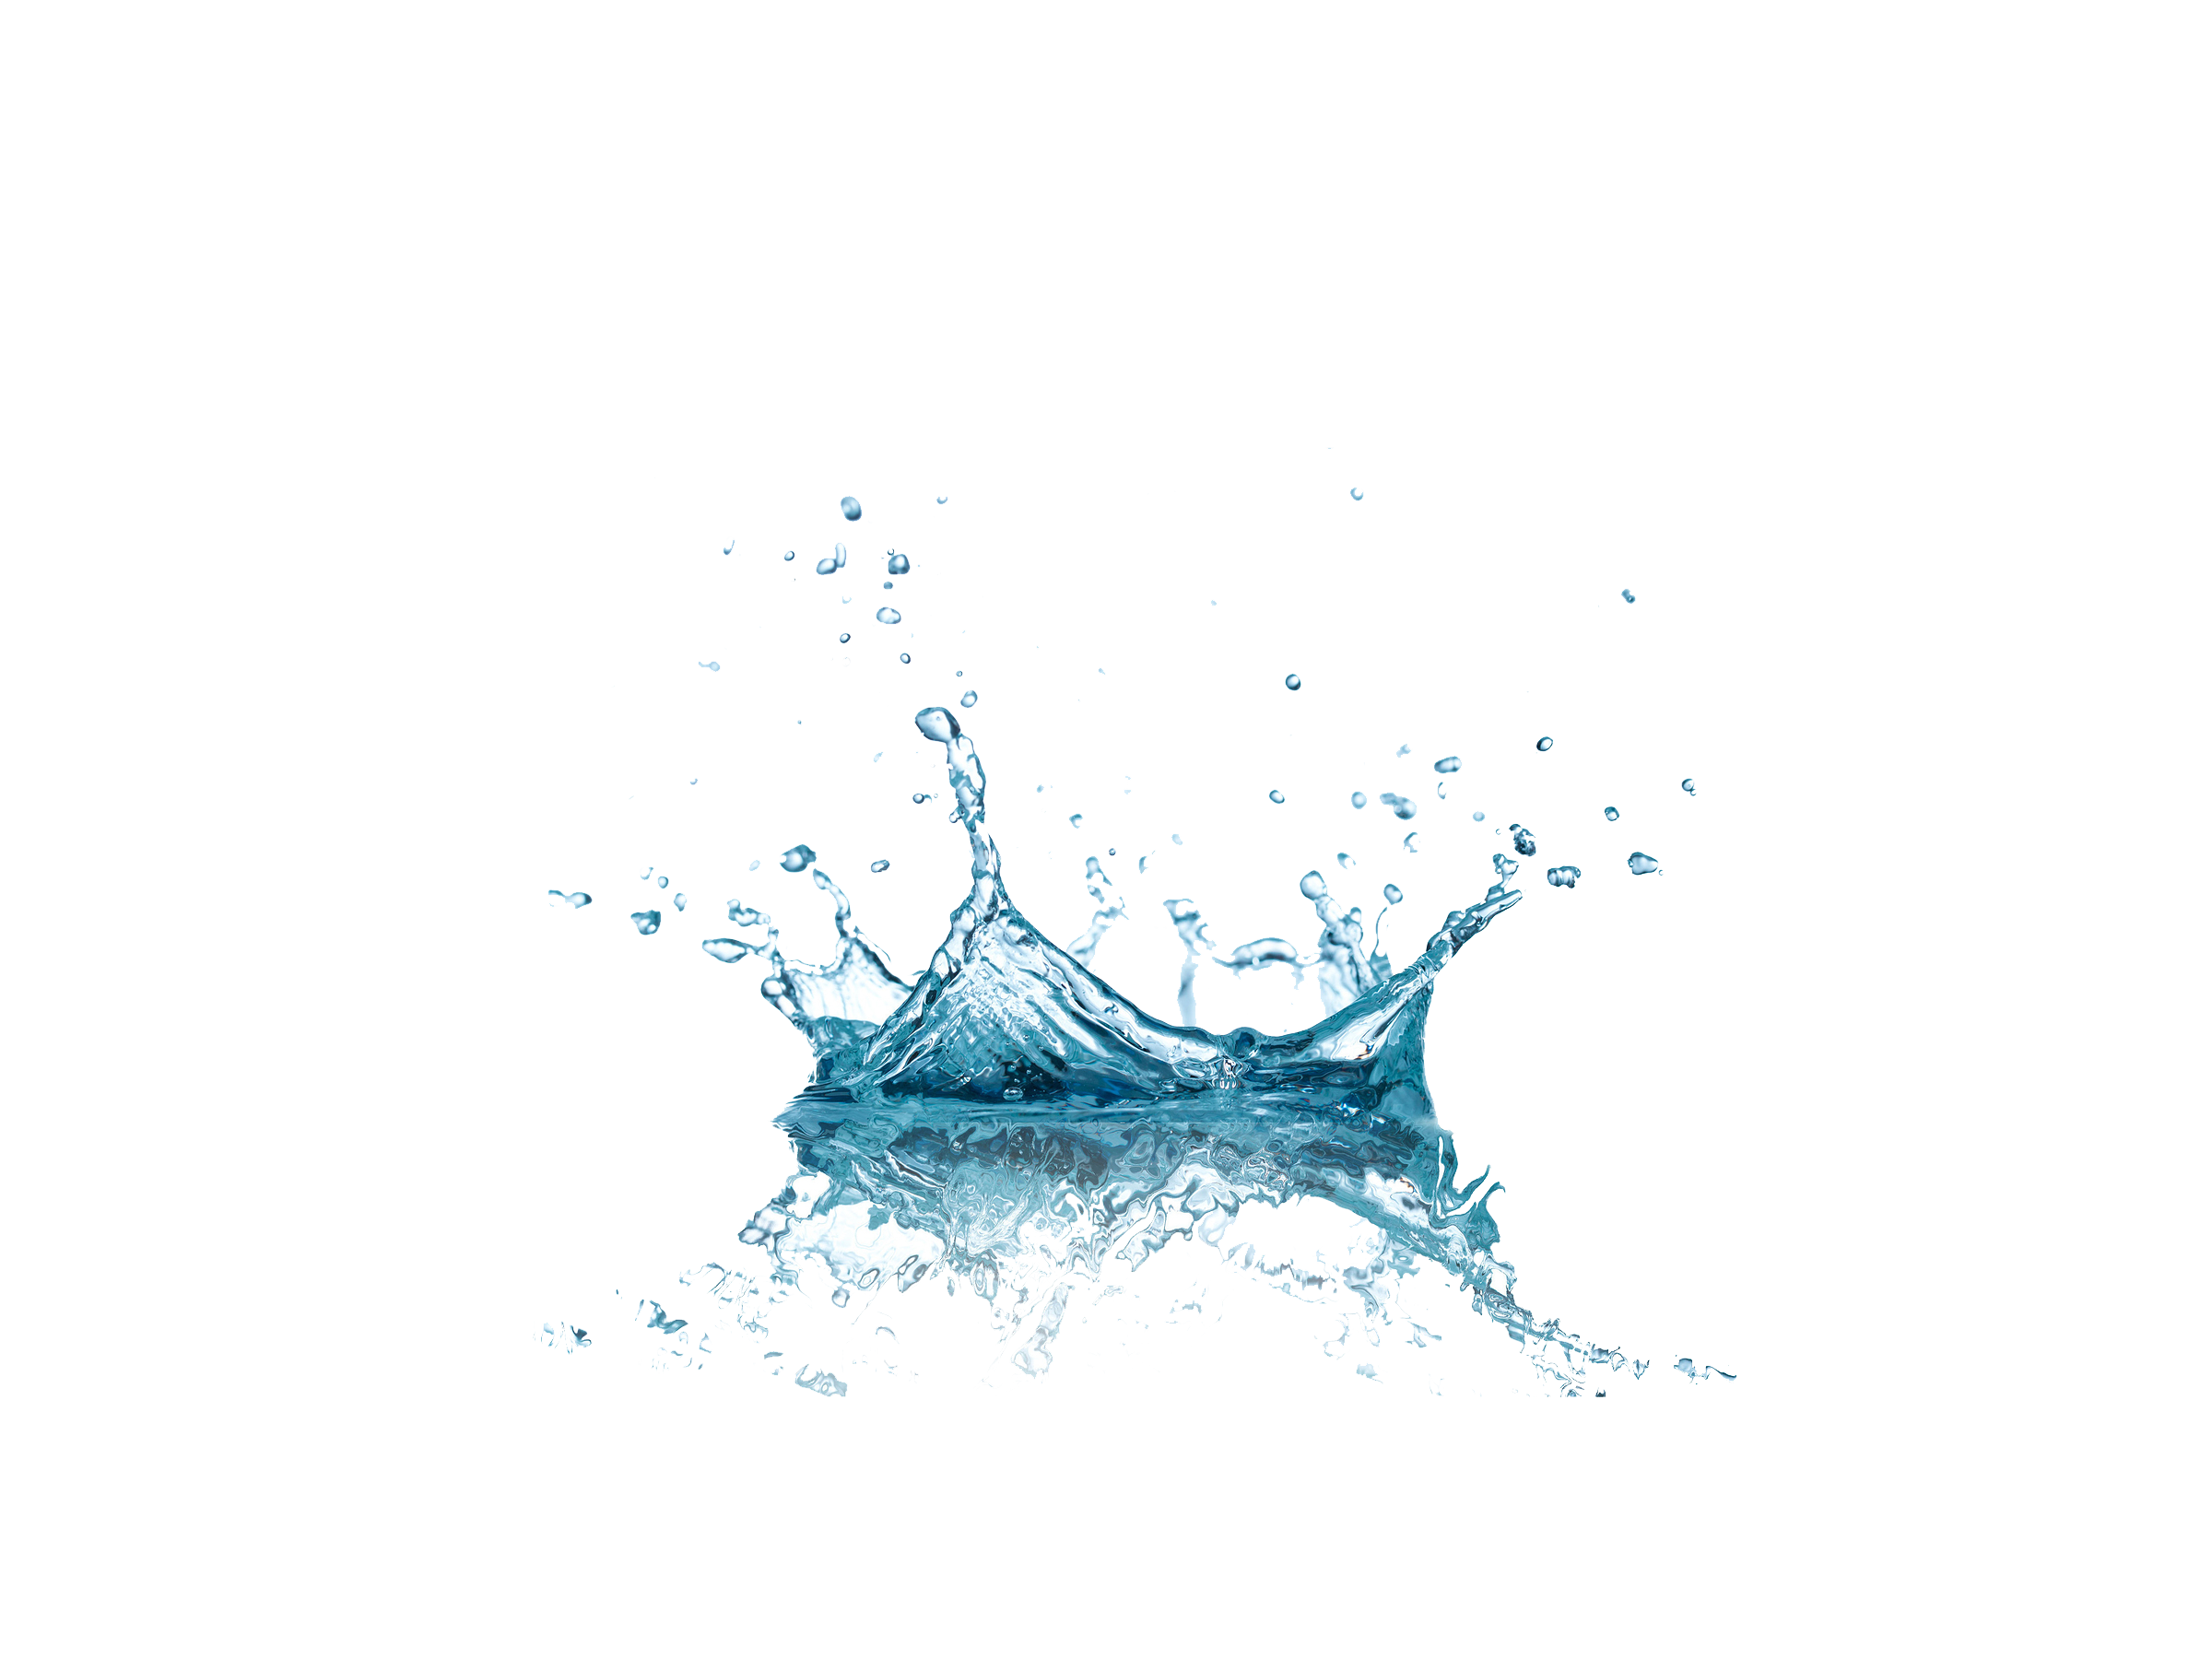 banner free download Wet clipart splashing. Water splash png prayerbomb.